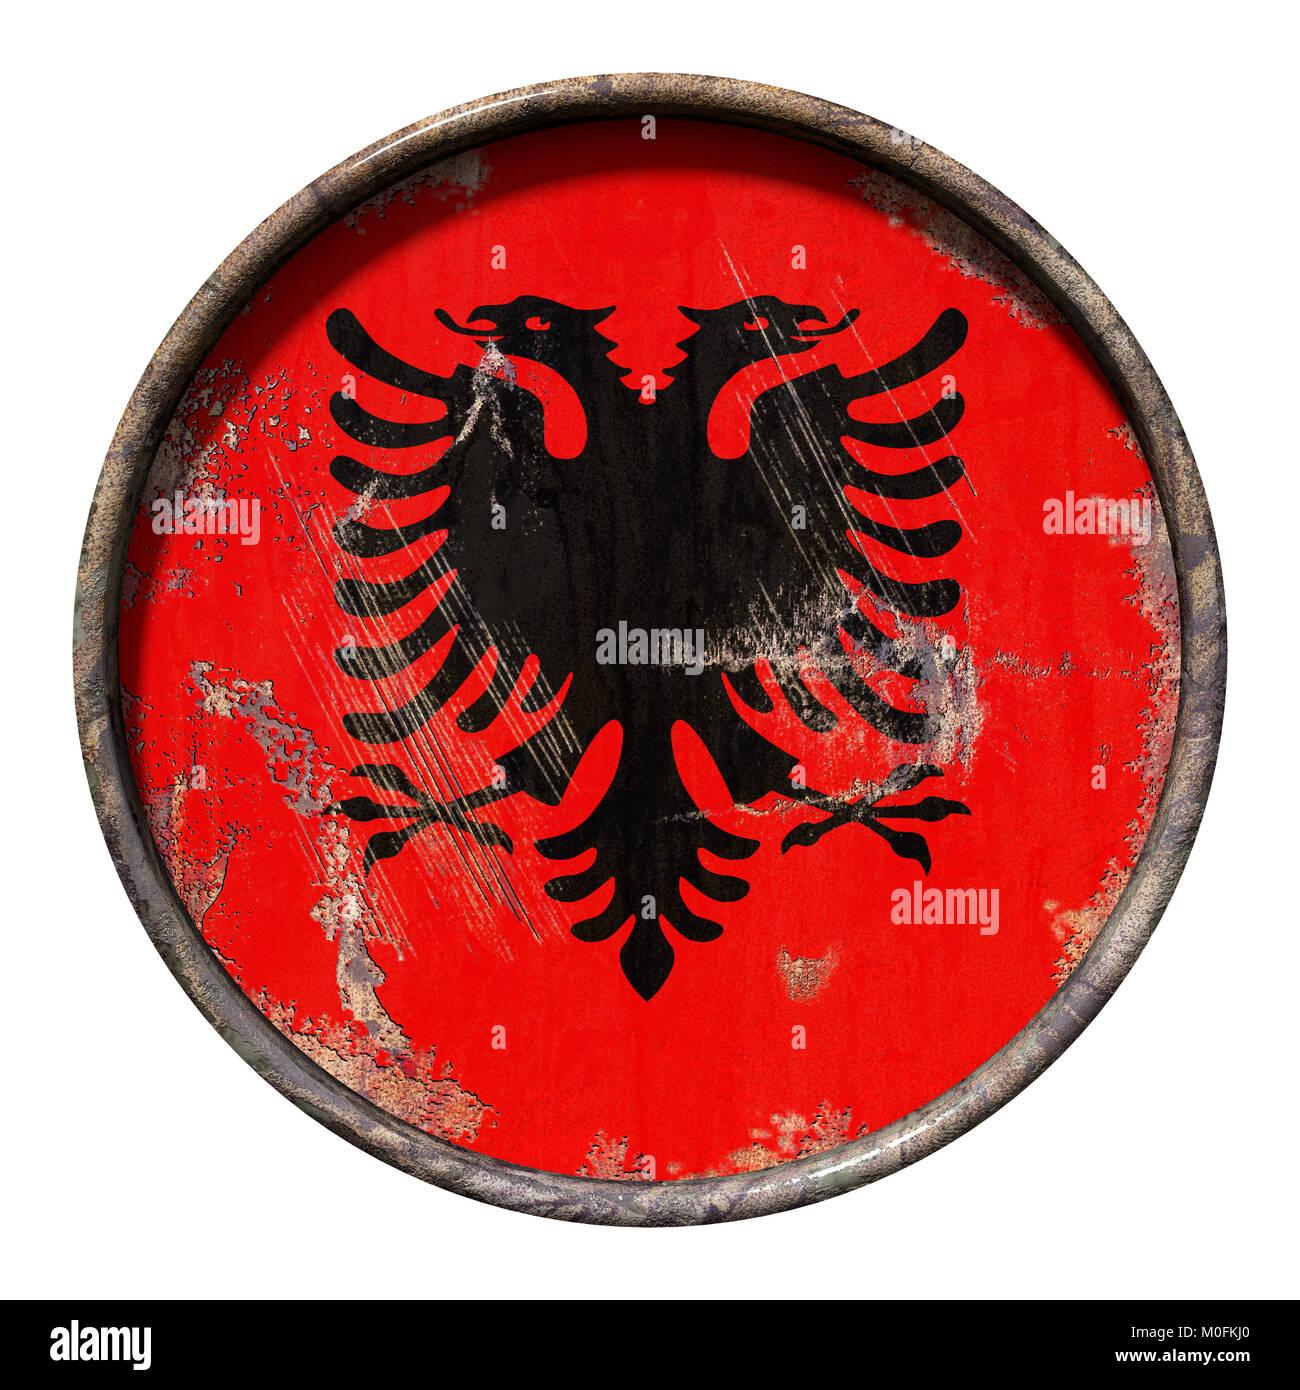 3d rendering of a Albania flag over a rusty metallic plate. Isolated on white background. - Stock Image